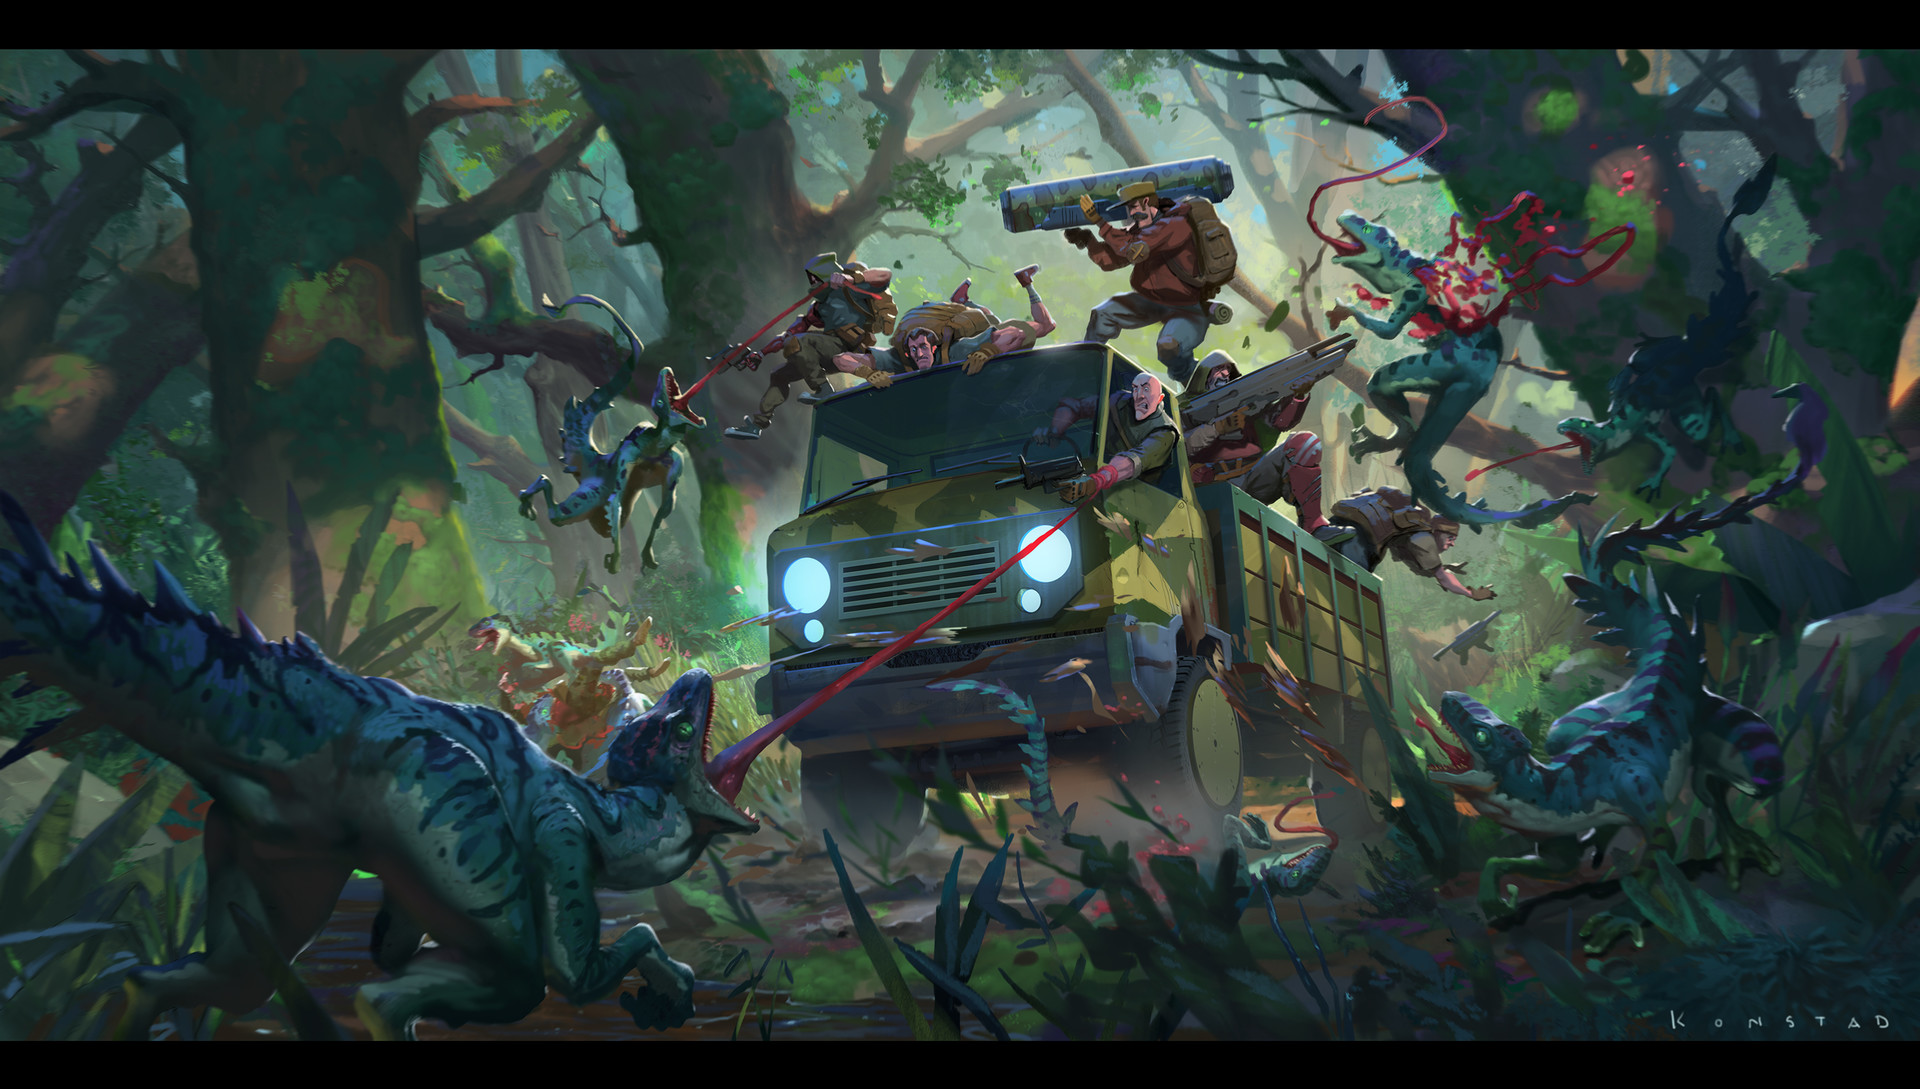 Alex Konstad Digital Painting Forest Encounter